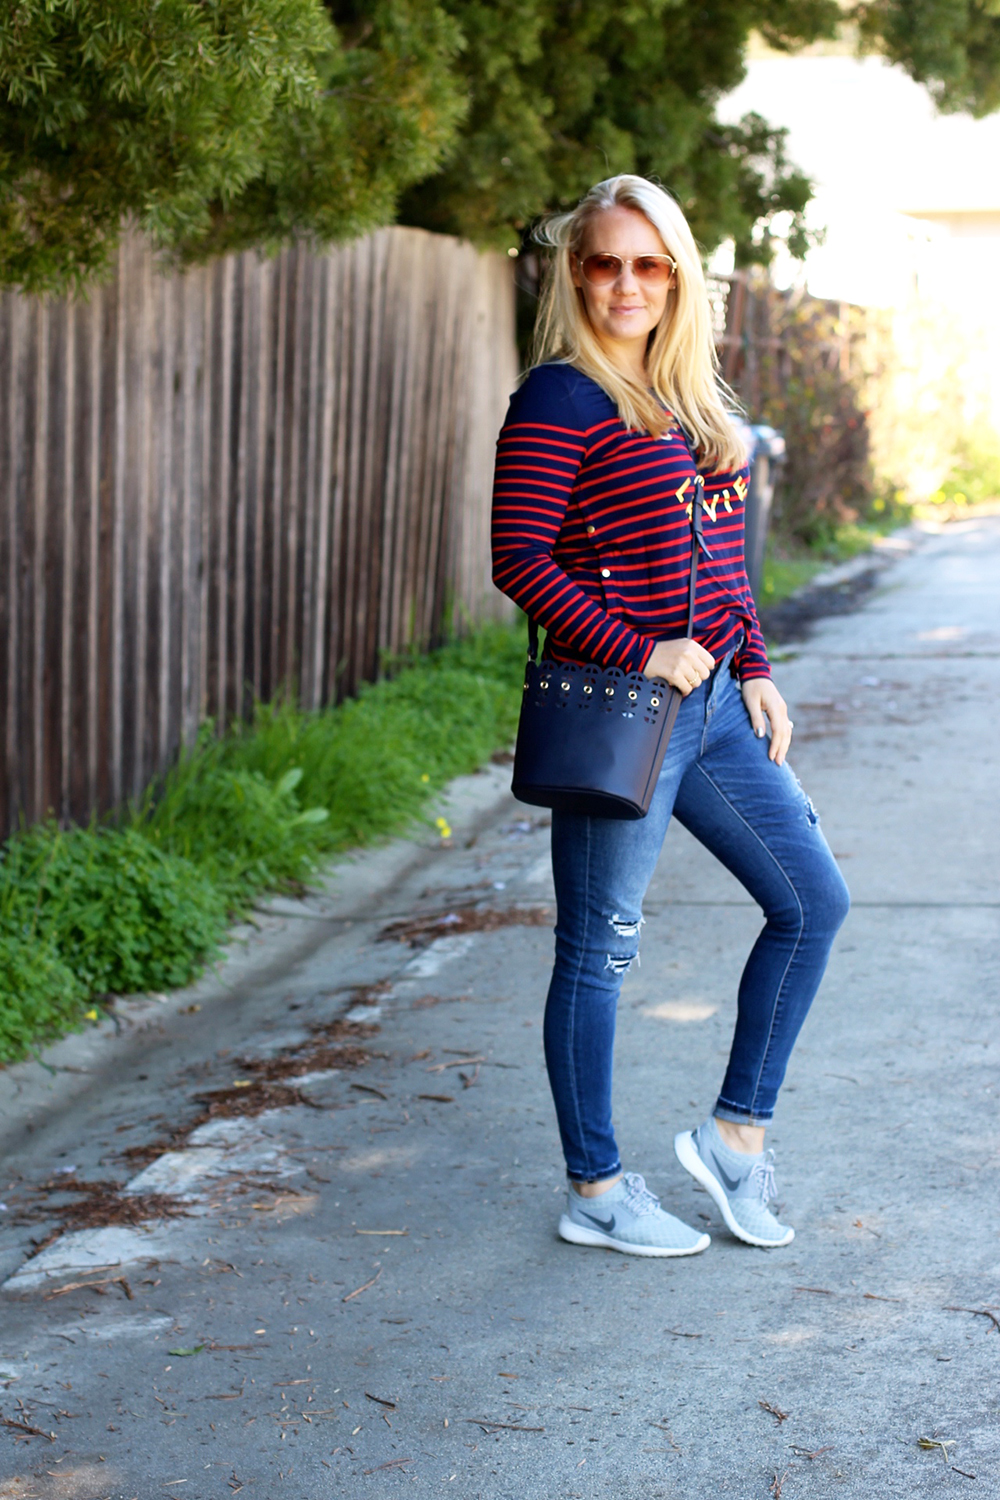 C'est La Vie-Everyday Mom Style-Mom Uniform-Nursing Top-Outfit Inspiration-Bay Area Fashion Blogger-Have Need Want 7